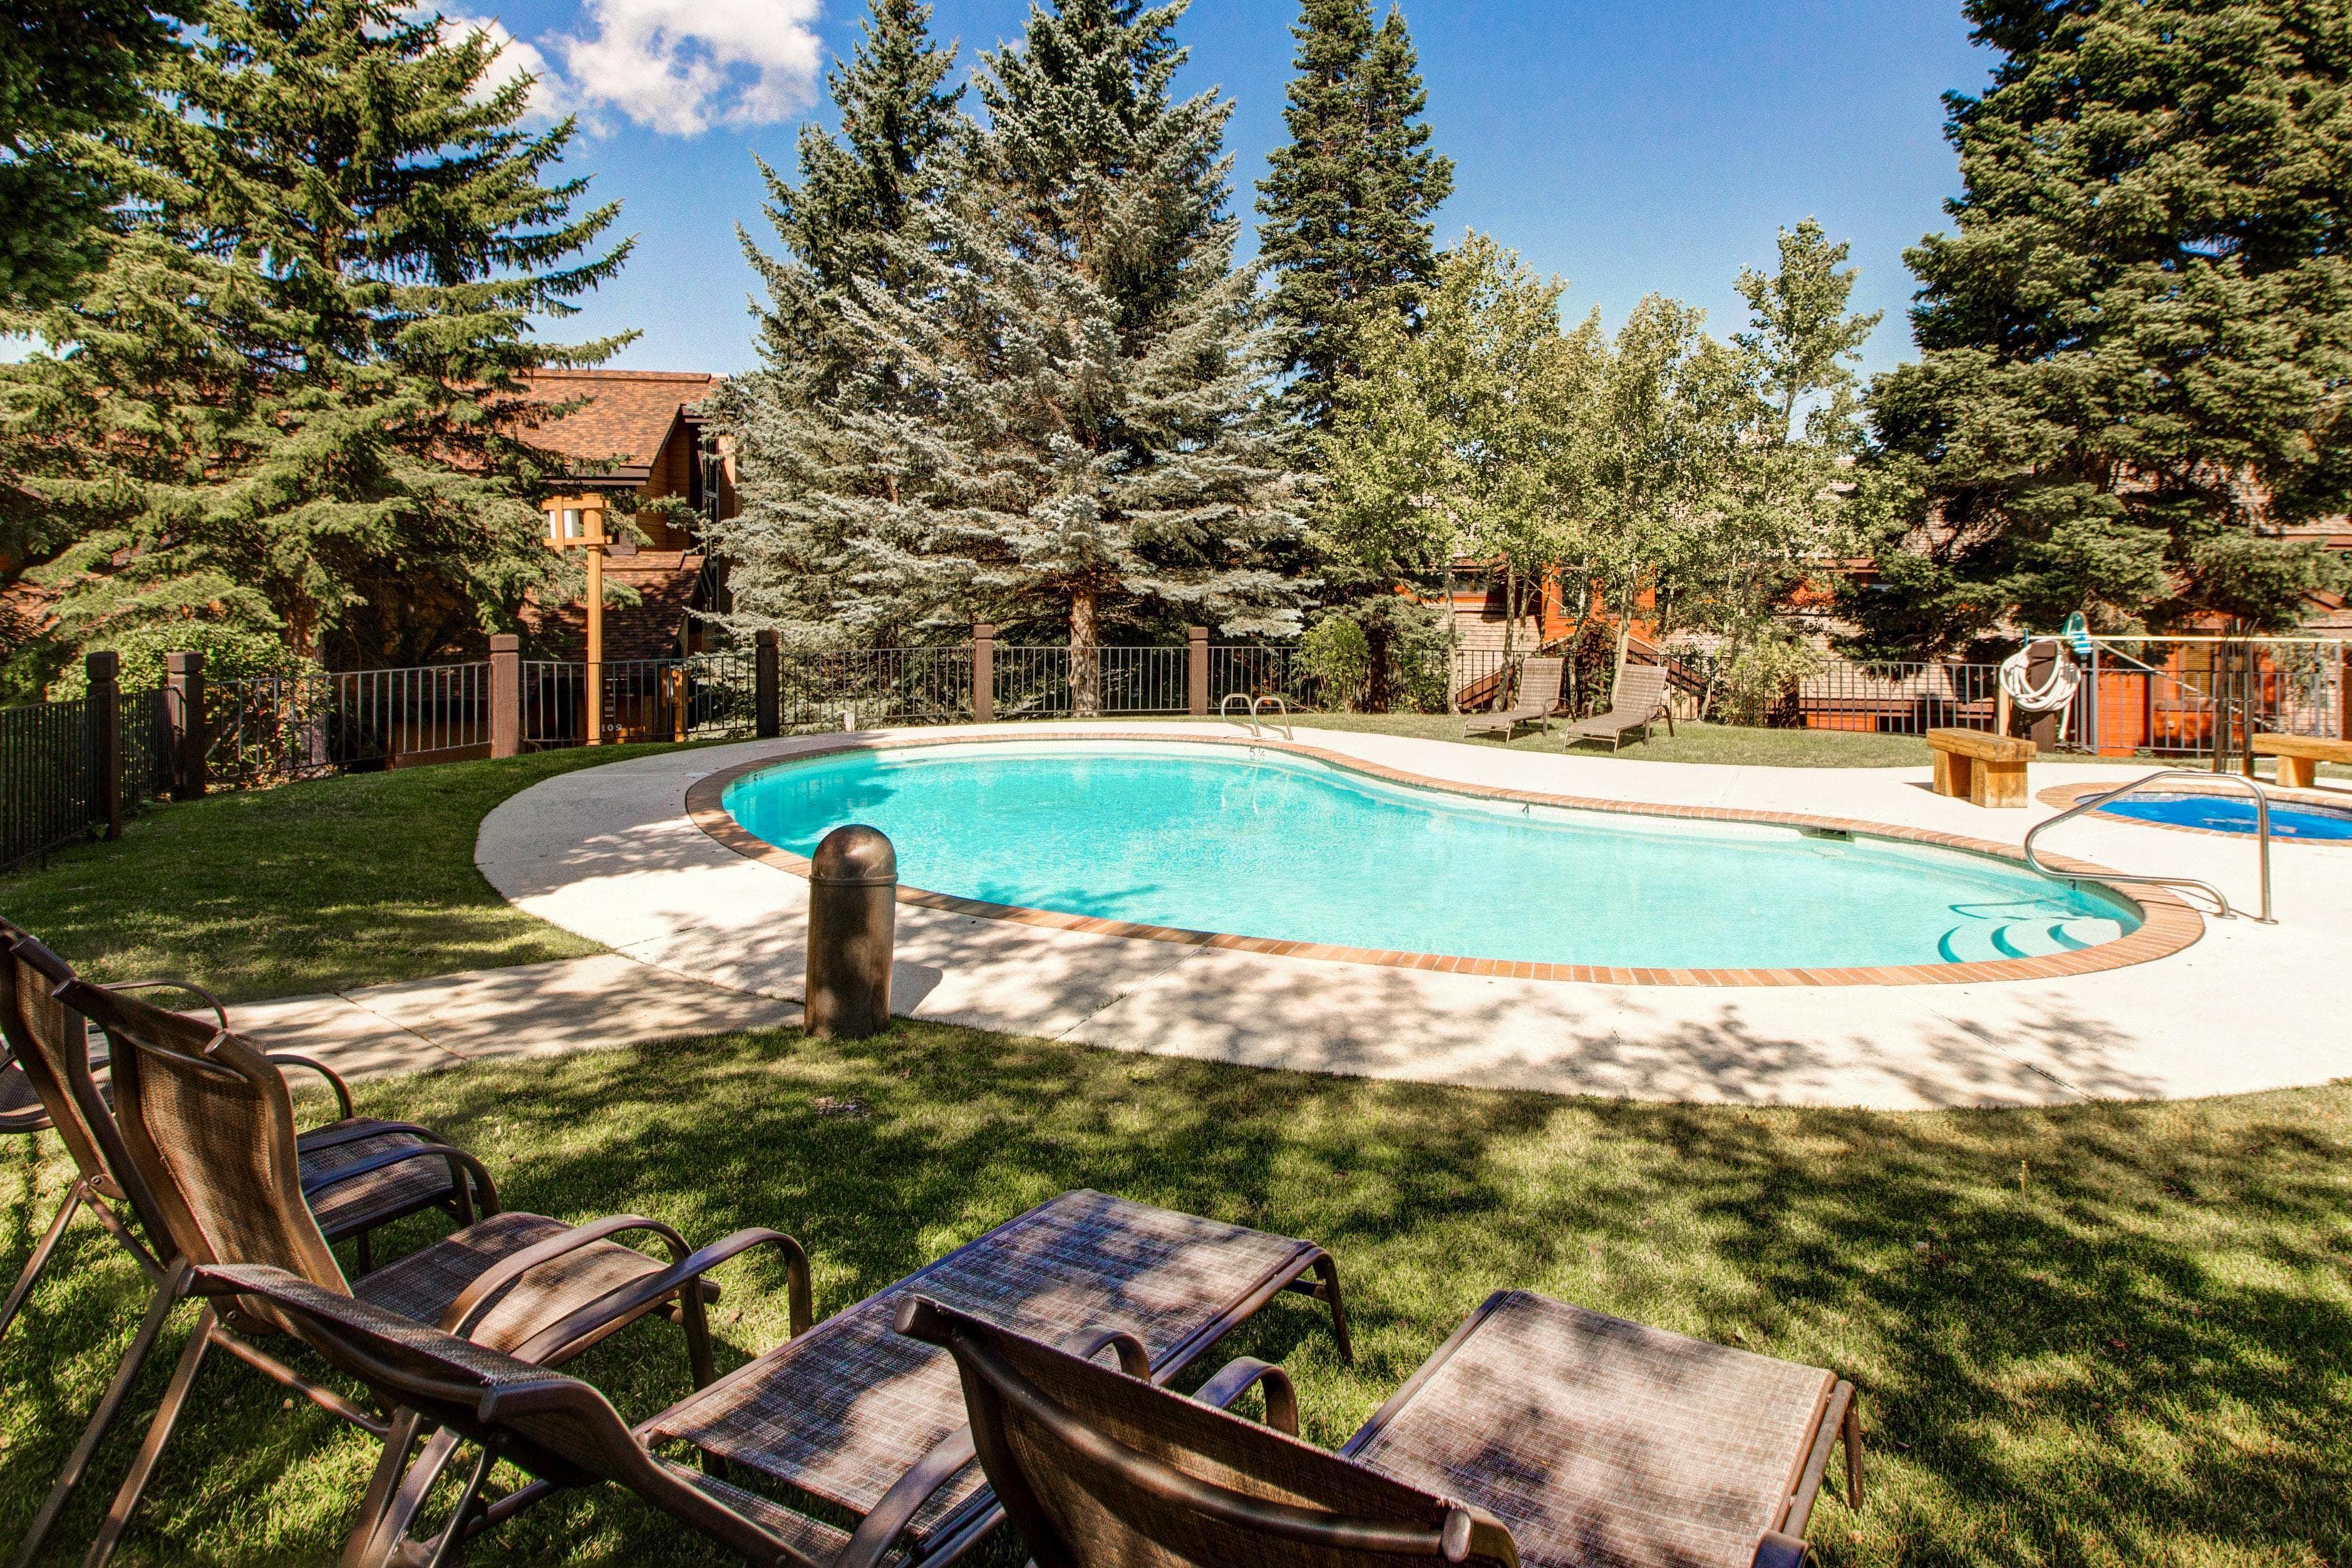 The shared pool and hot tub offer plenty of space to relax in the sun and shade.